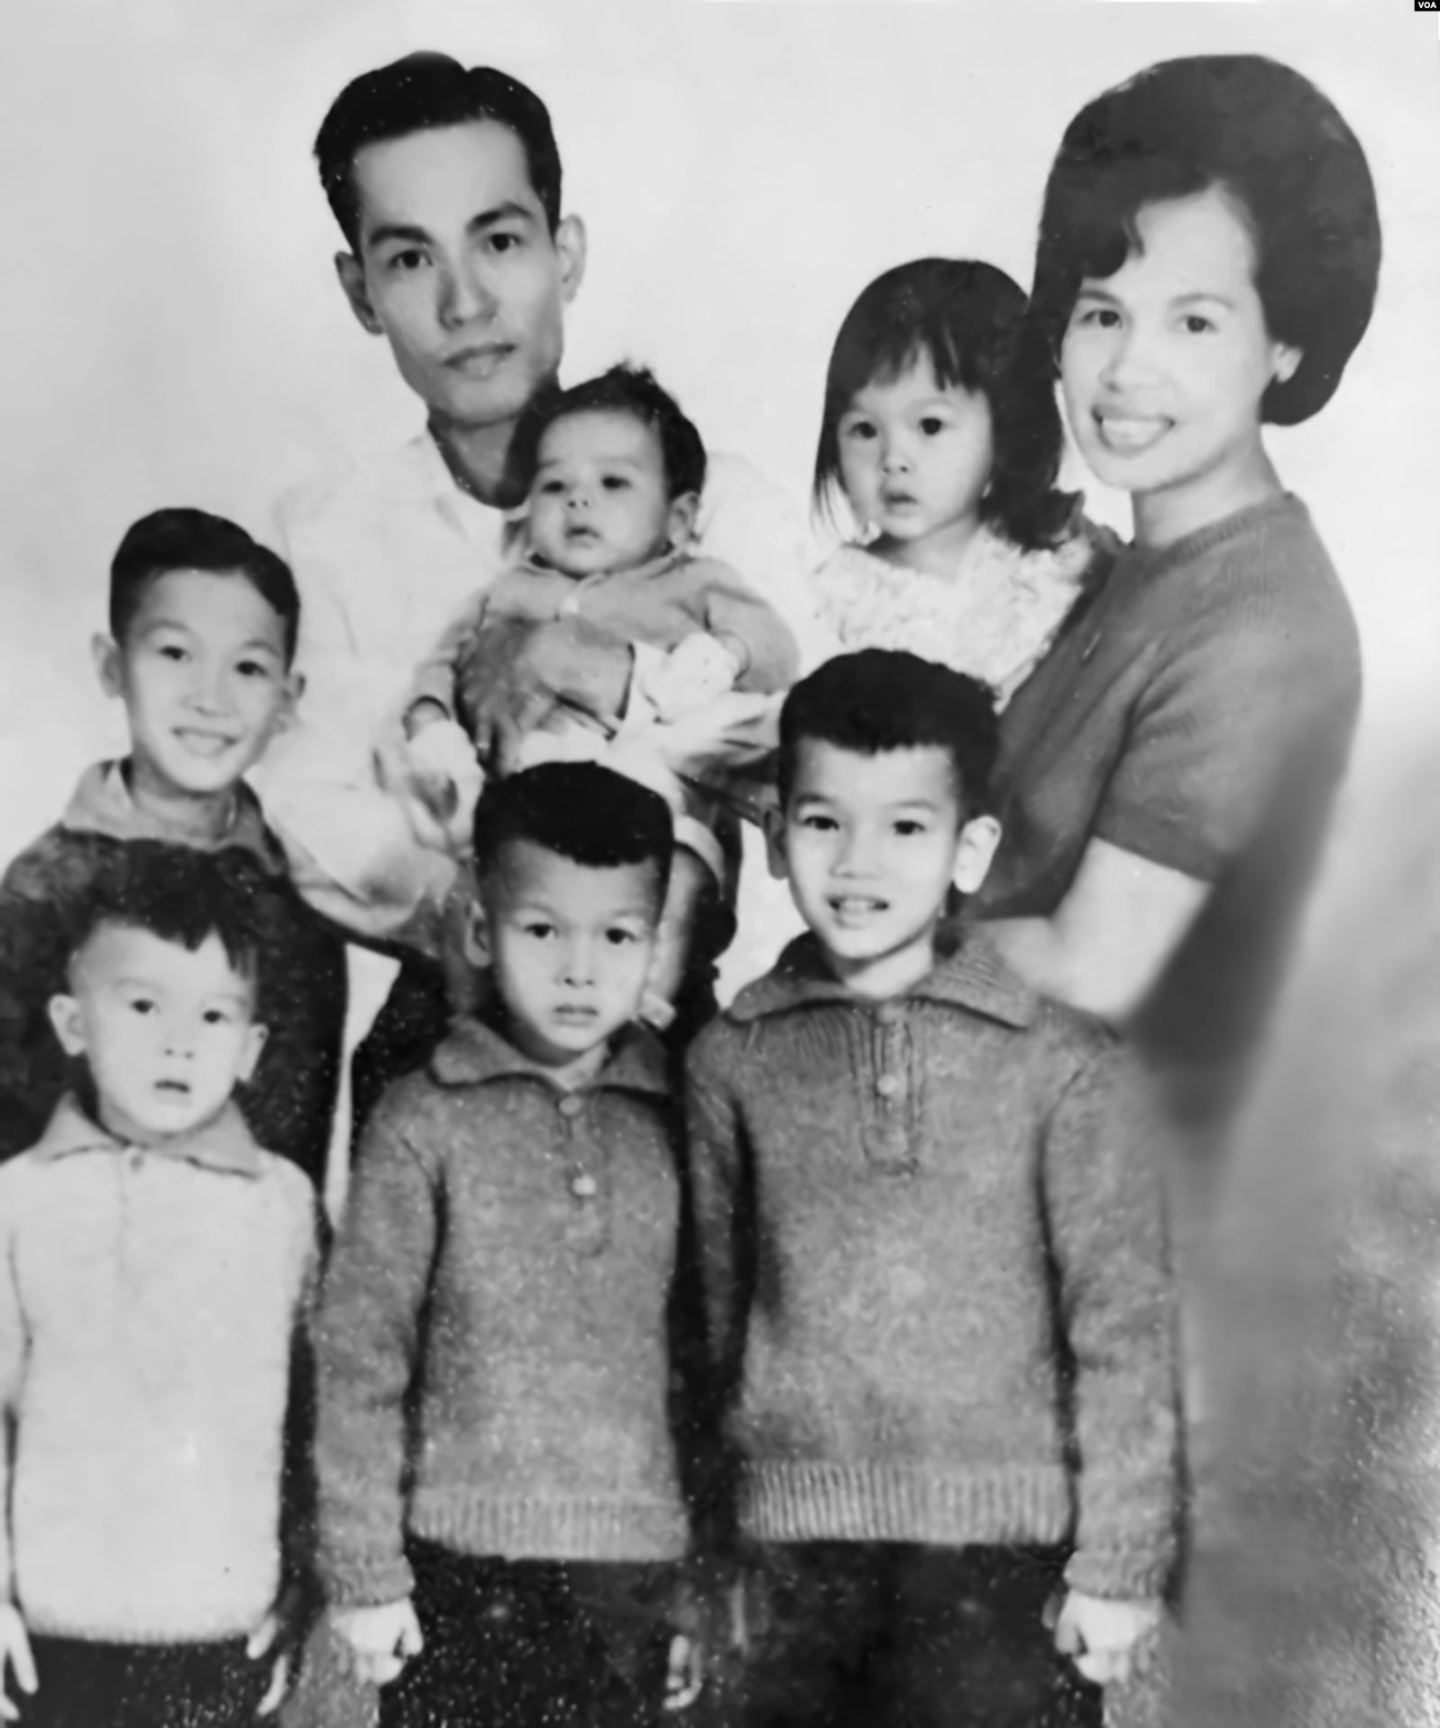 The family that was murdered